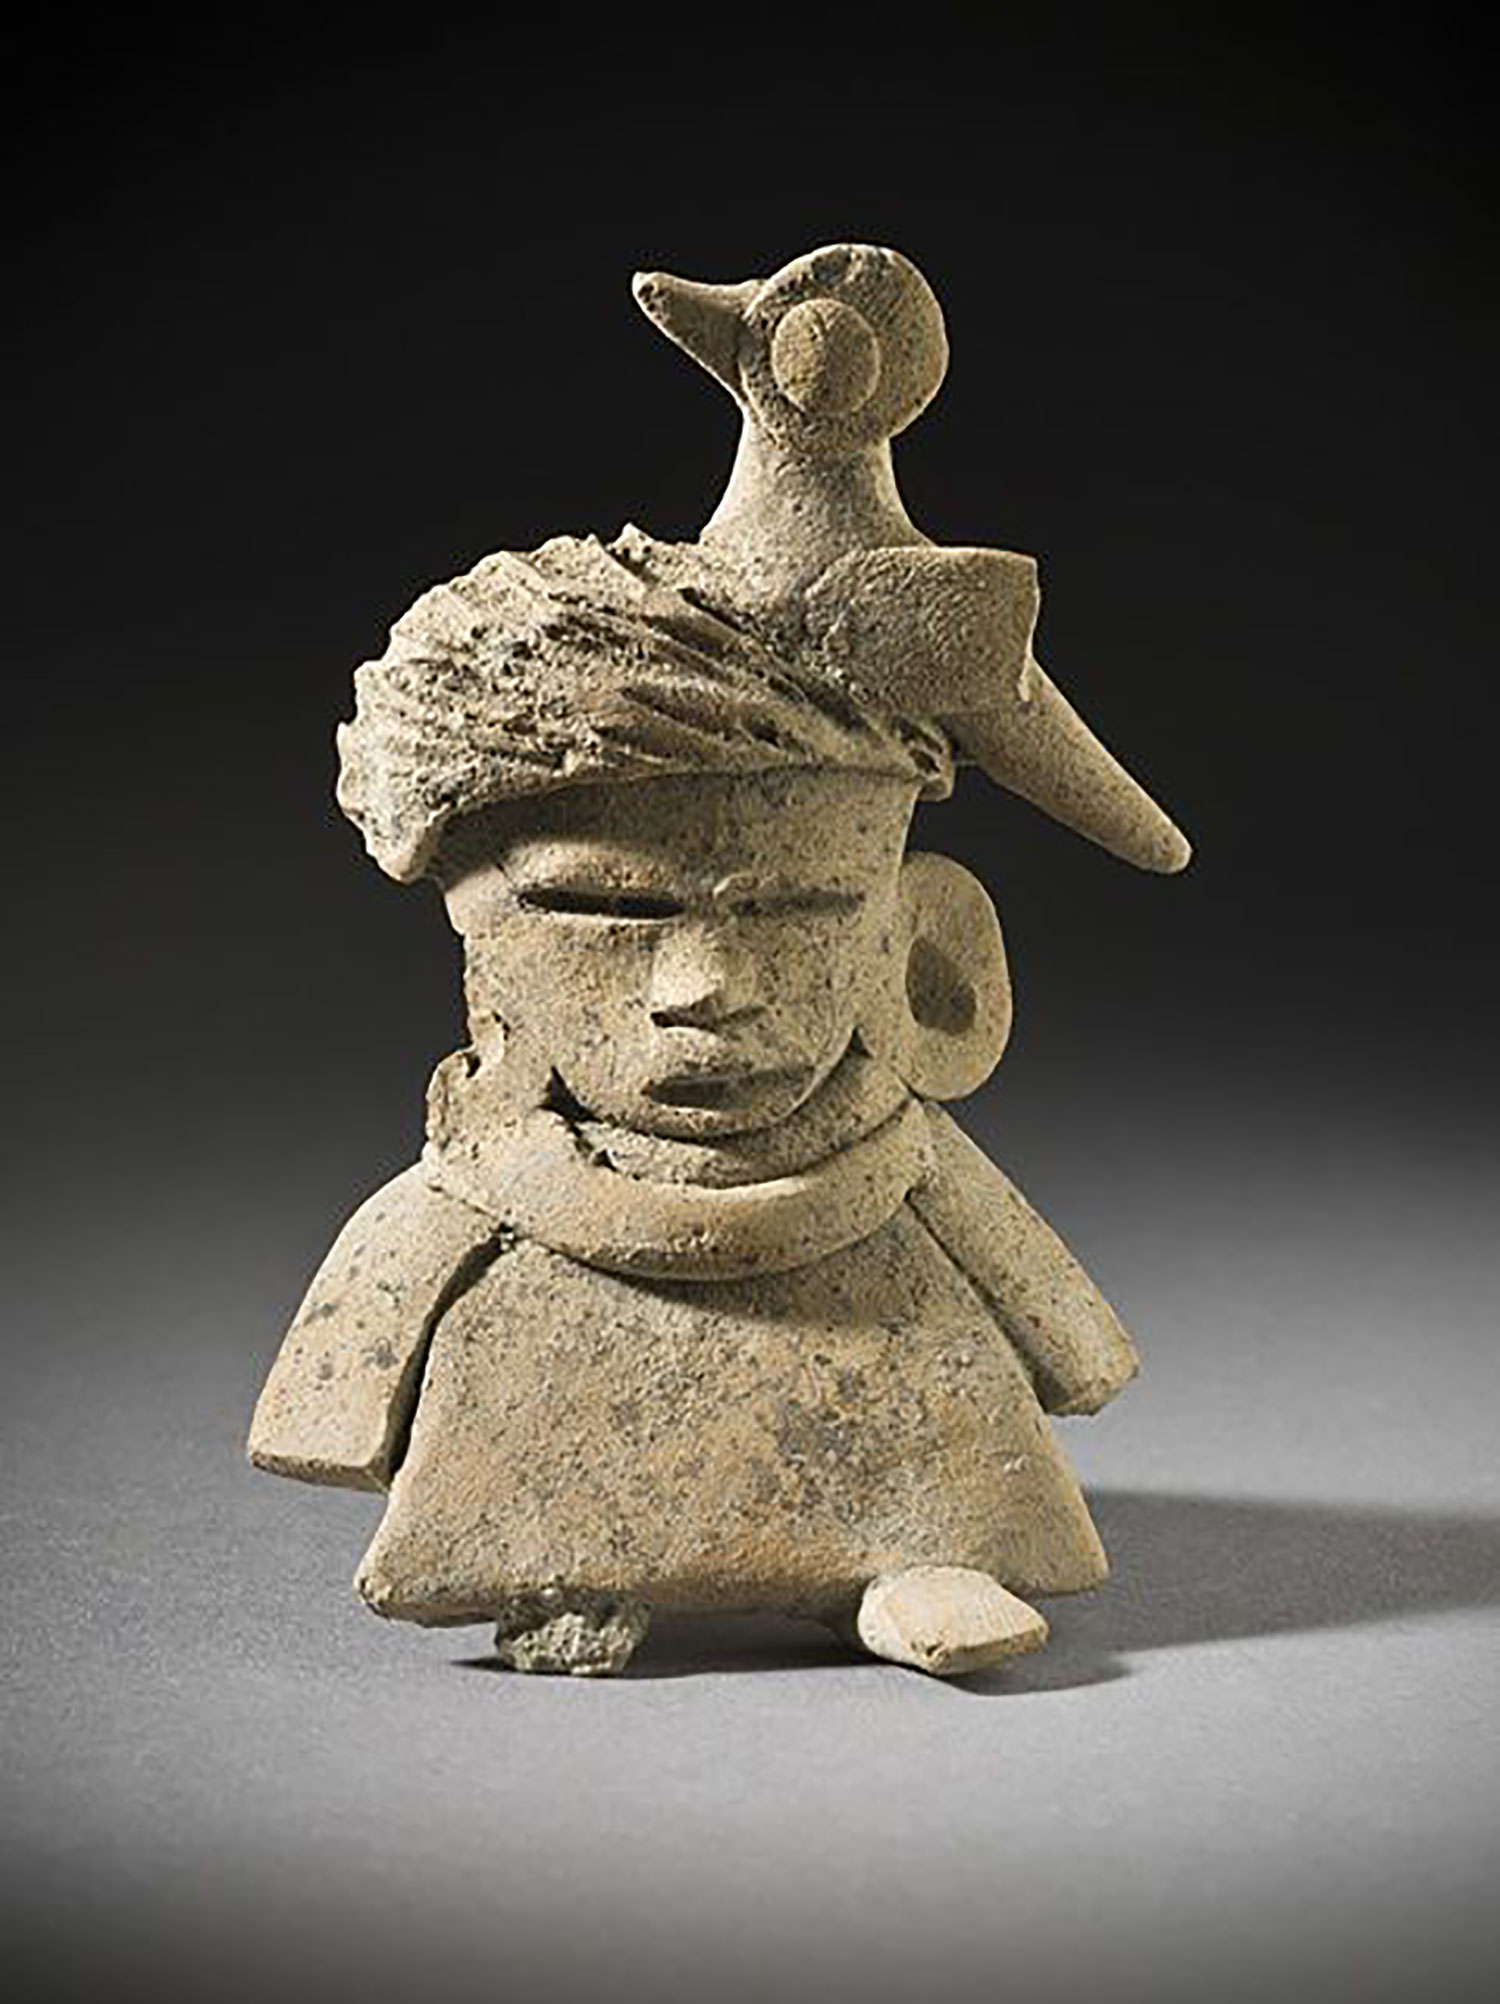 Seated female figure from Teotihuacán, 150-450 AD (credit: Pinterest).